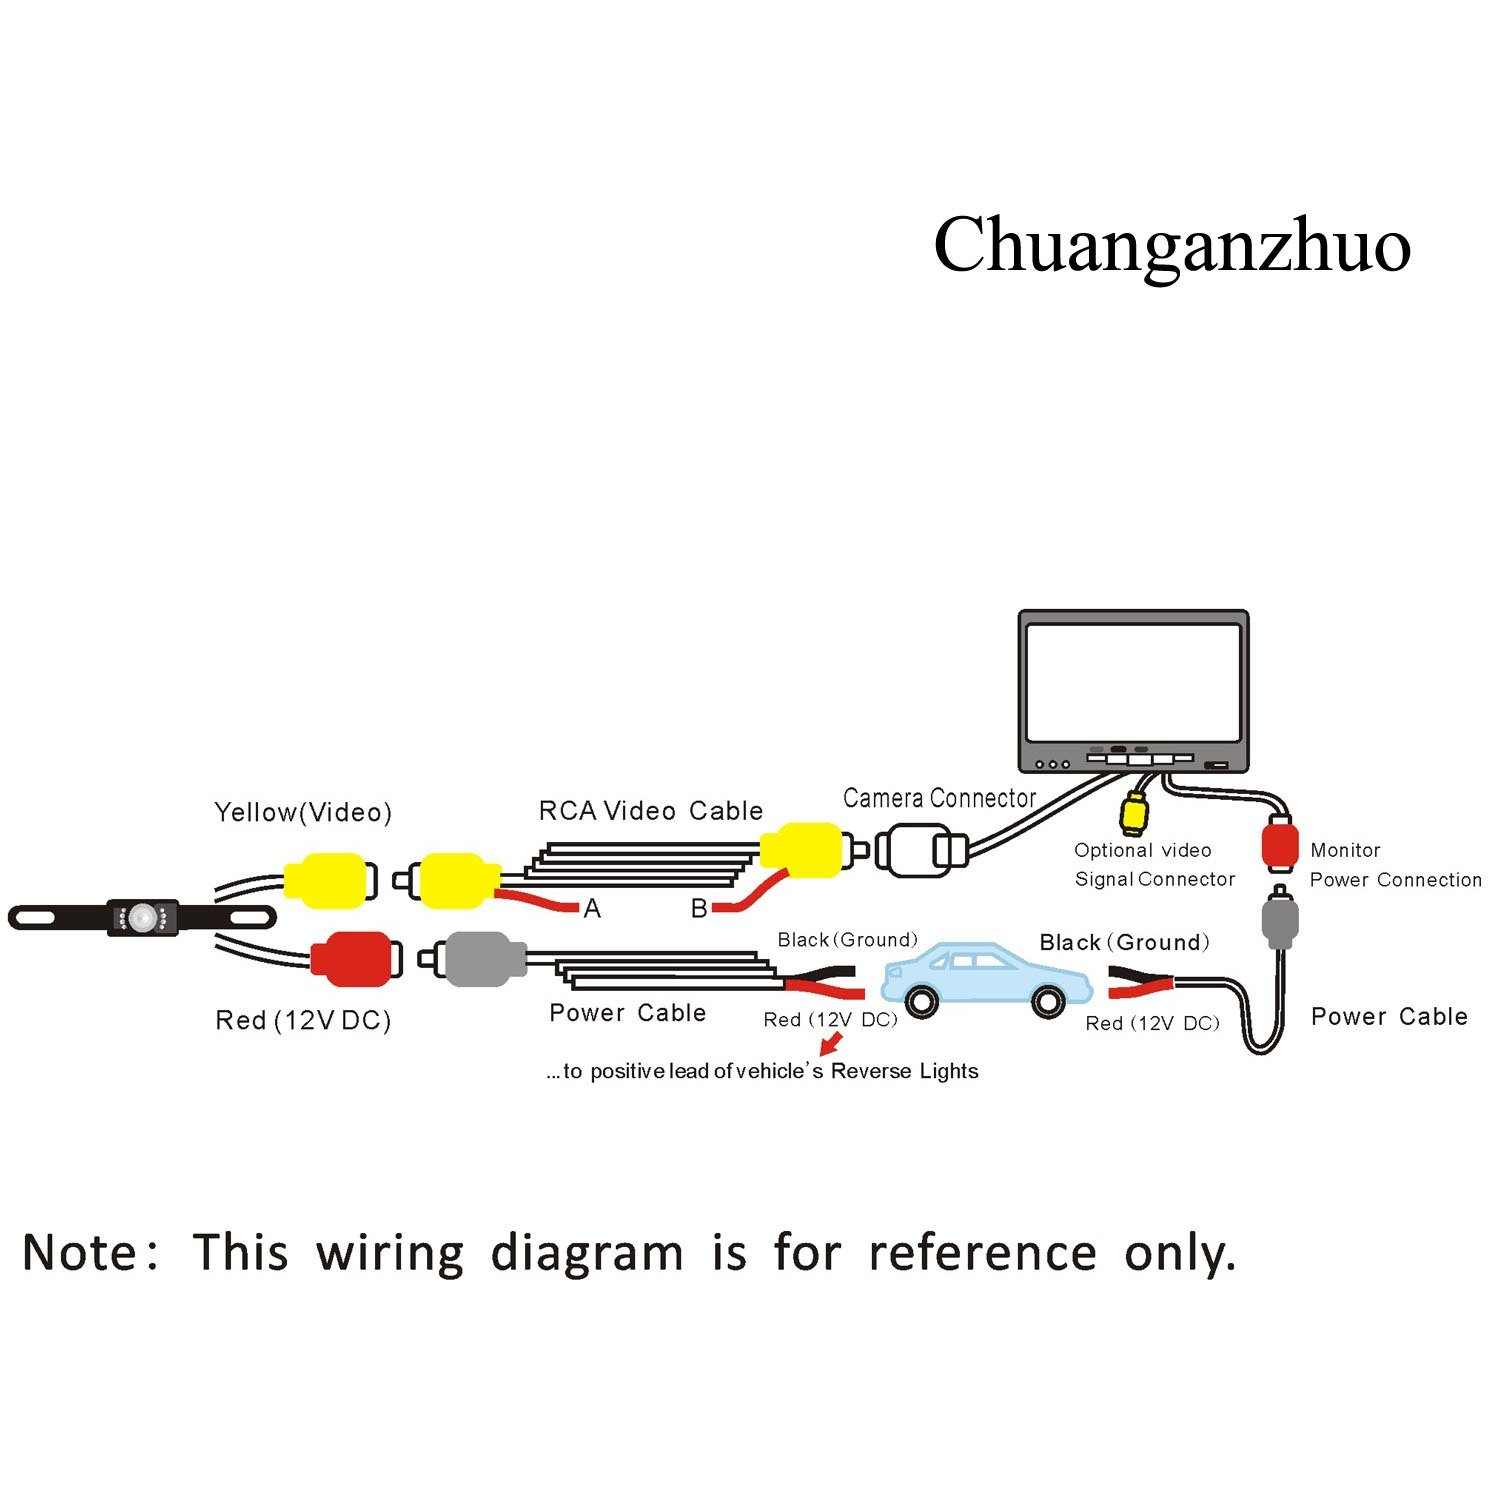 61eN9cMJzuL._SL1500_ amazon com backup camera and monitor kit, chuanganzhuo license car wiring diagrams at bayanpartner.co